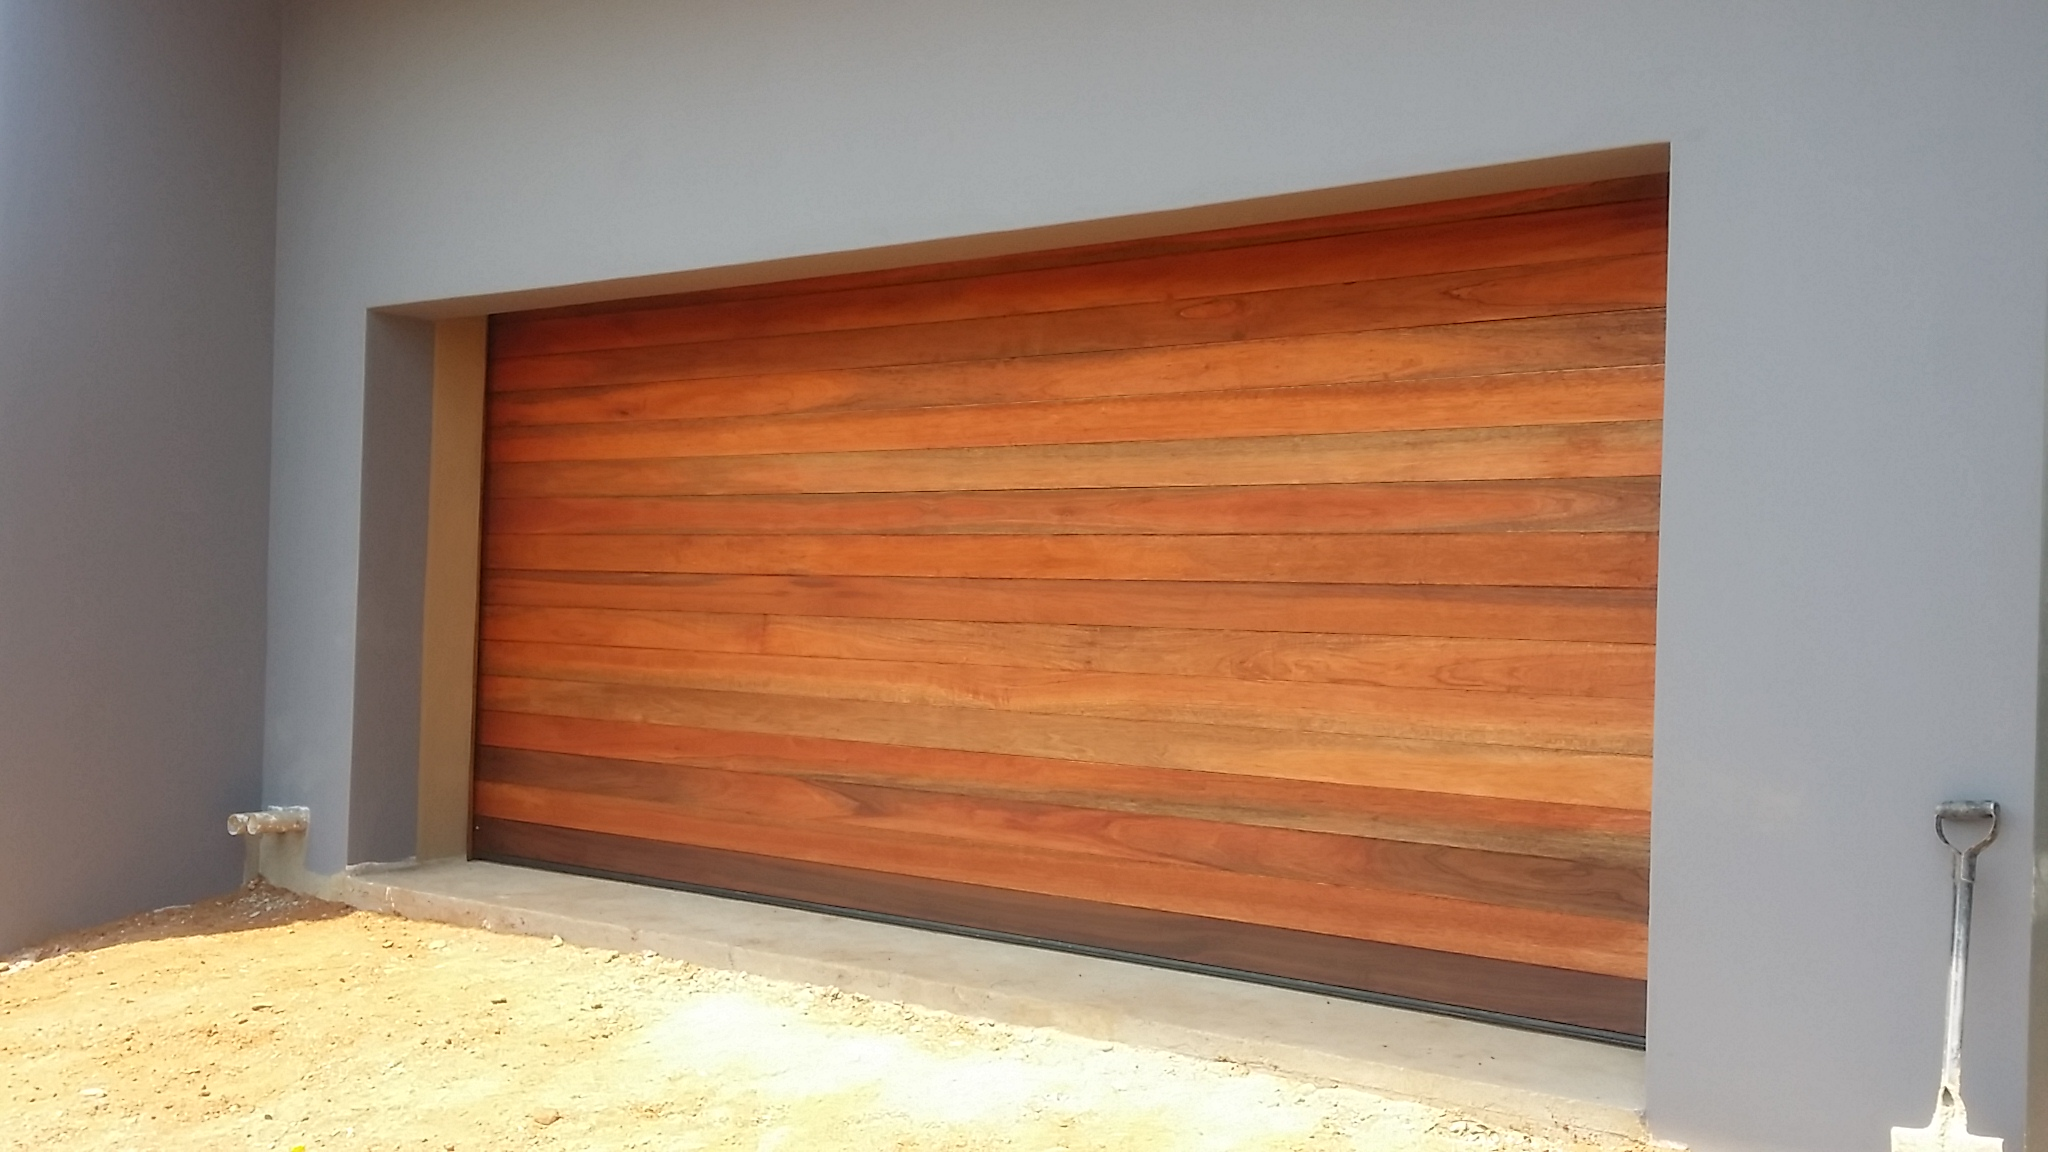 Windorpro Ptyltd Supply Quality Garage Doors Made From Steel Or Wood